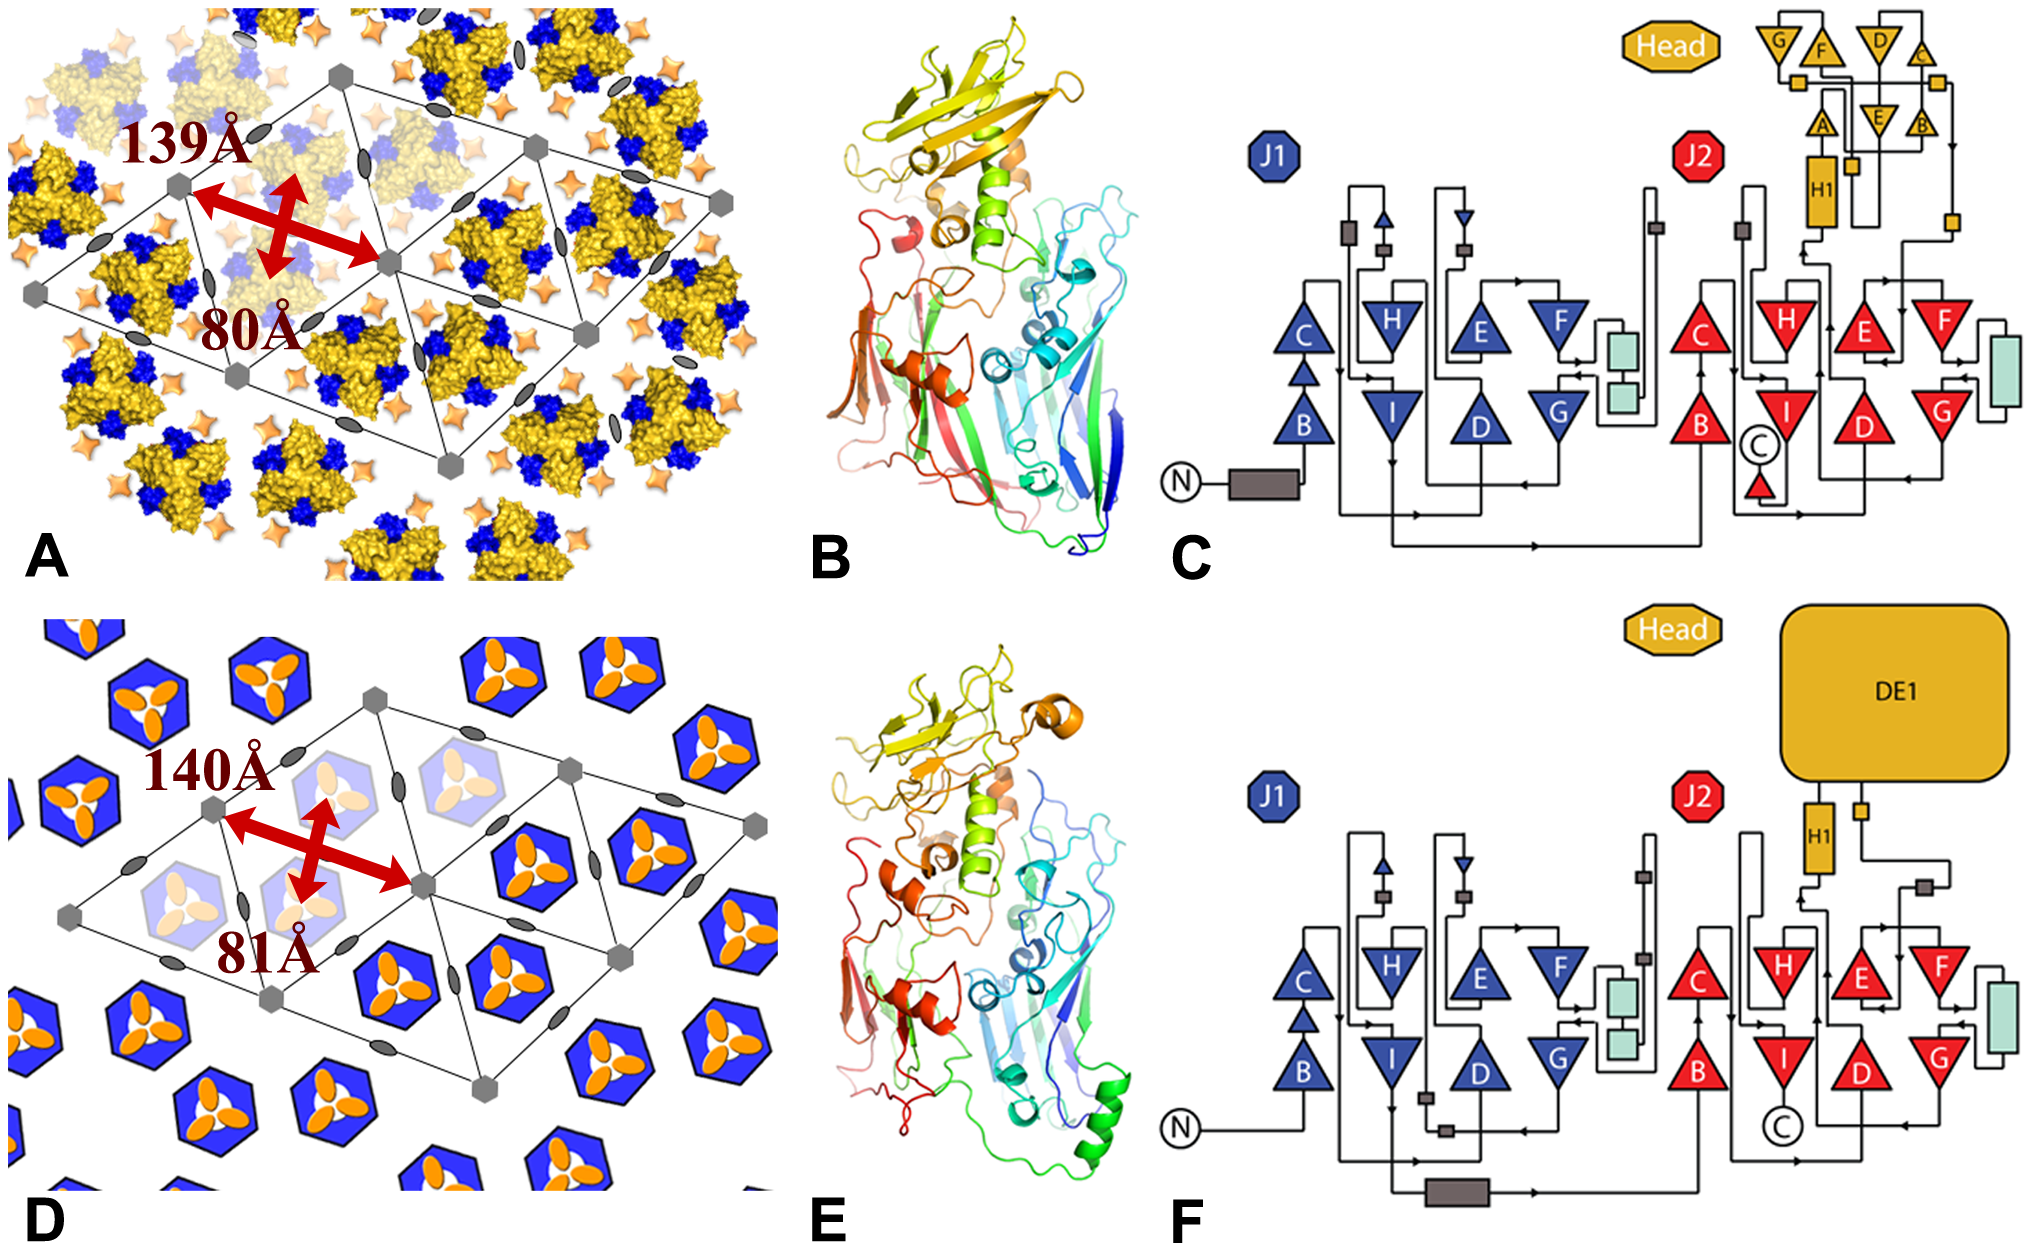 Comparison between the lattices and capsids of vaccinia virus and mimivirus.